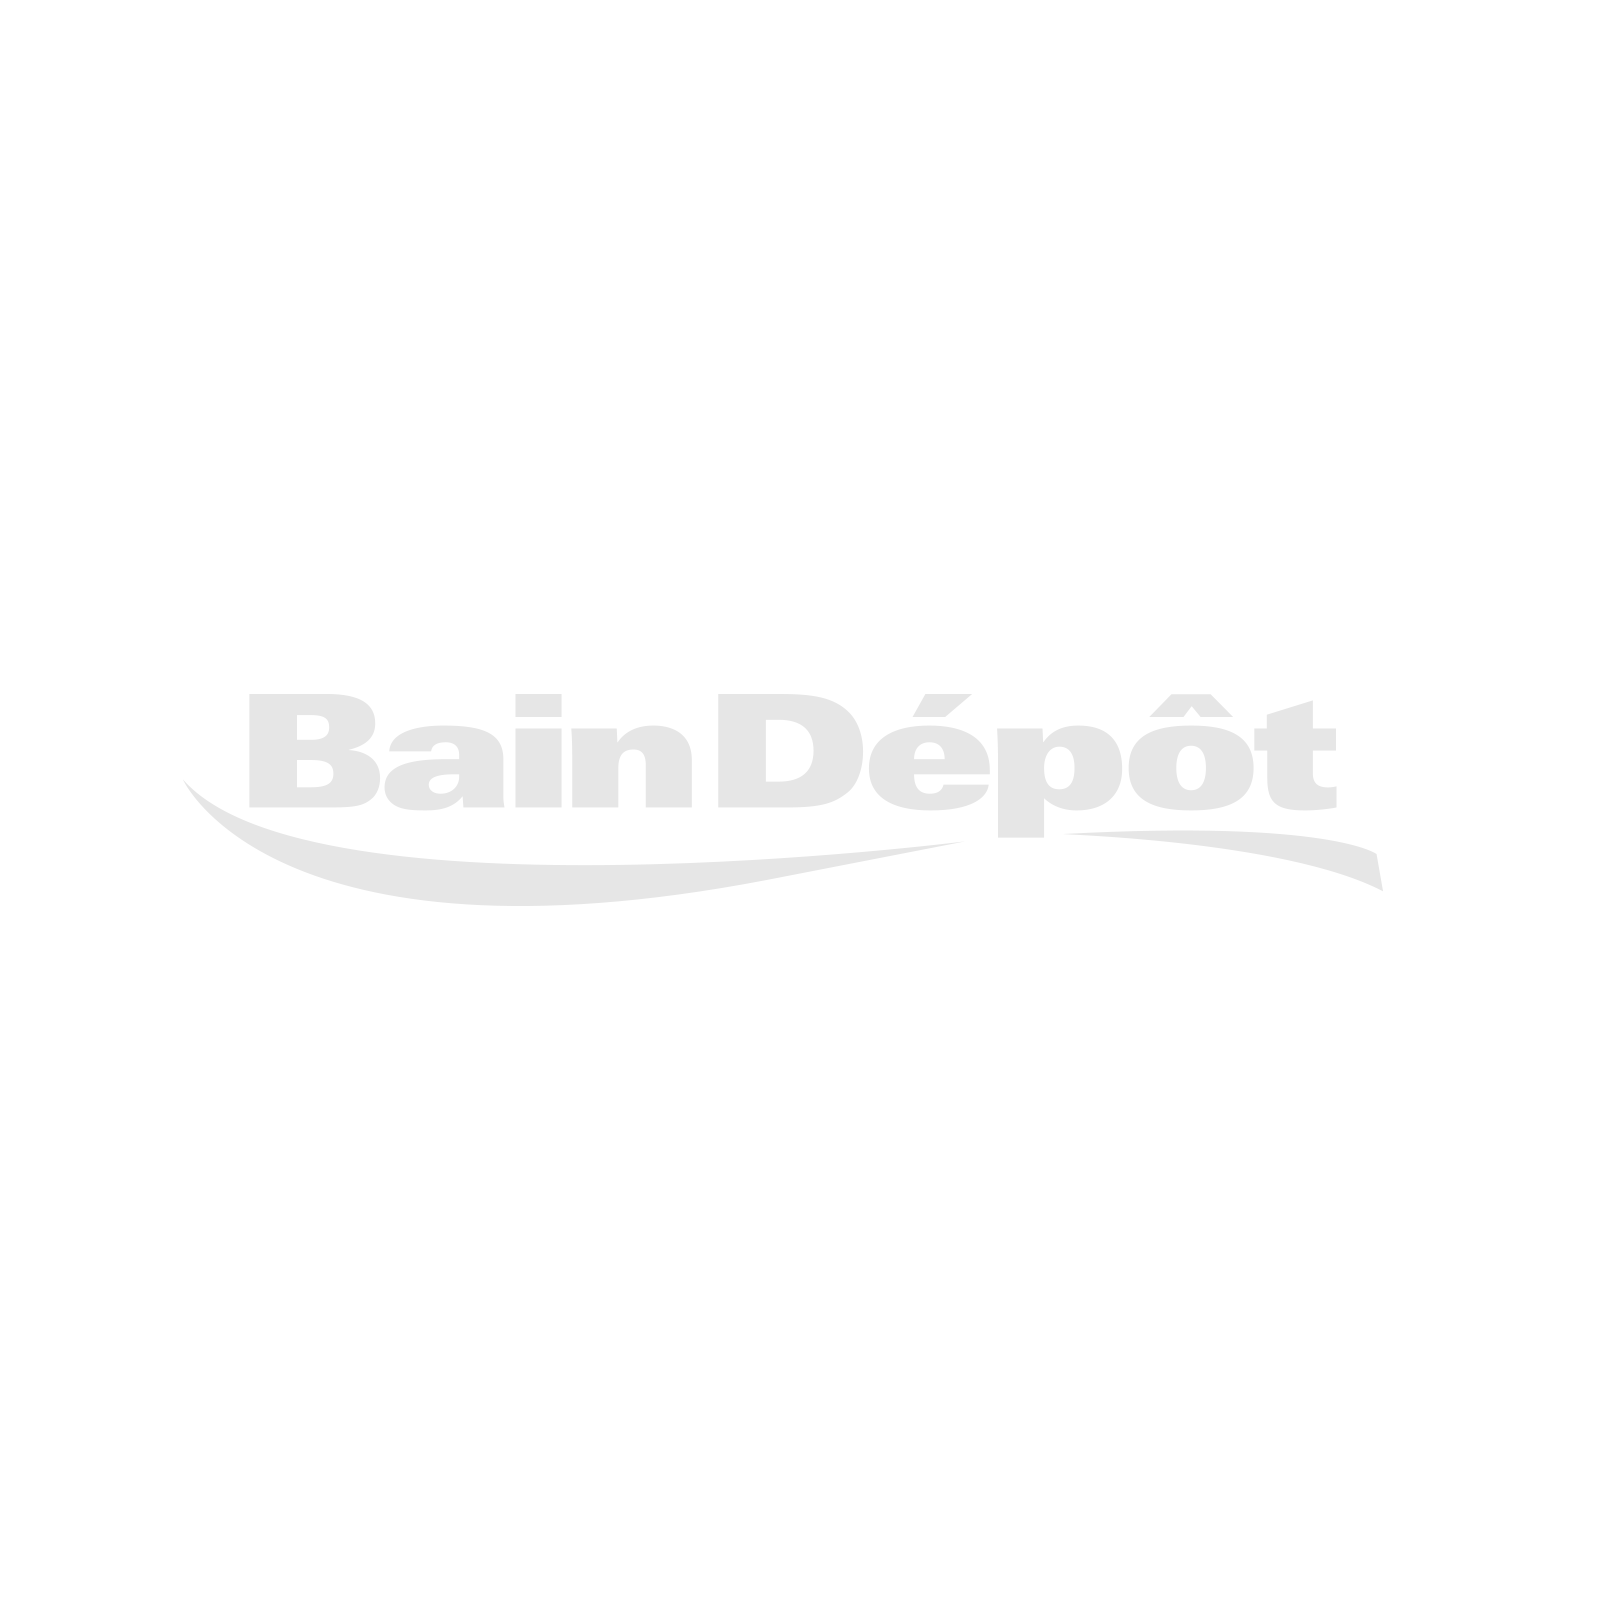 Tension rod kitchen organizer with 20 hooks